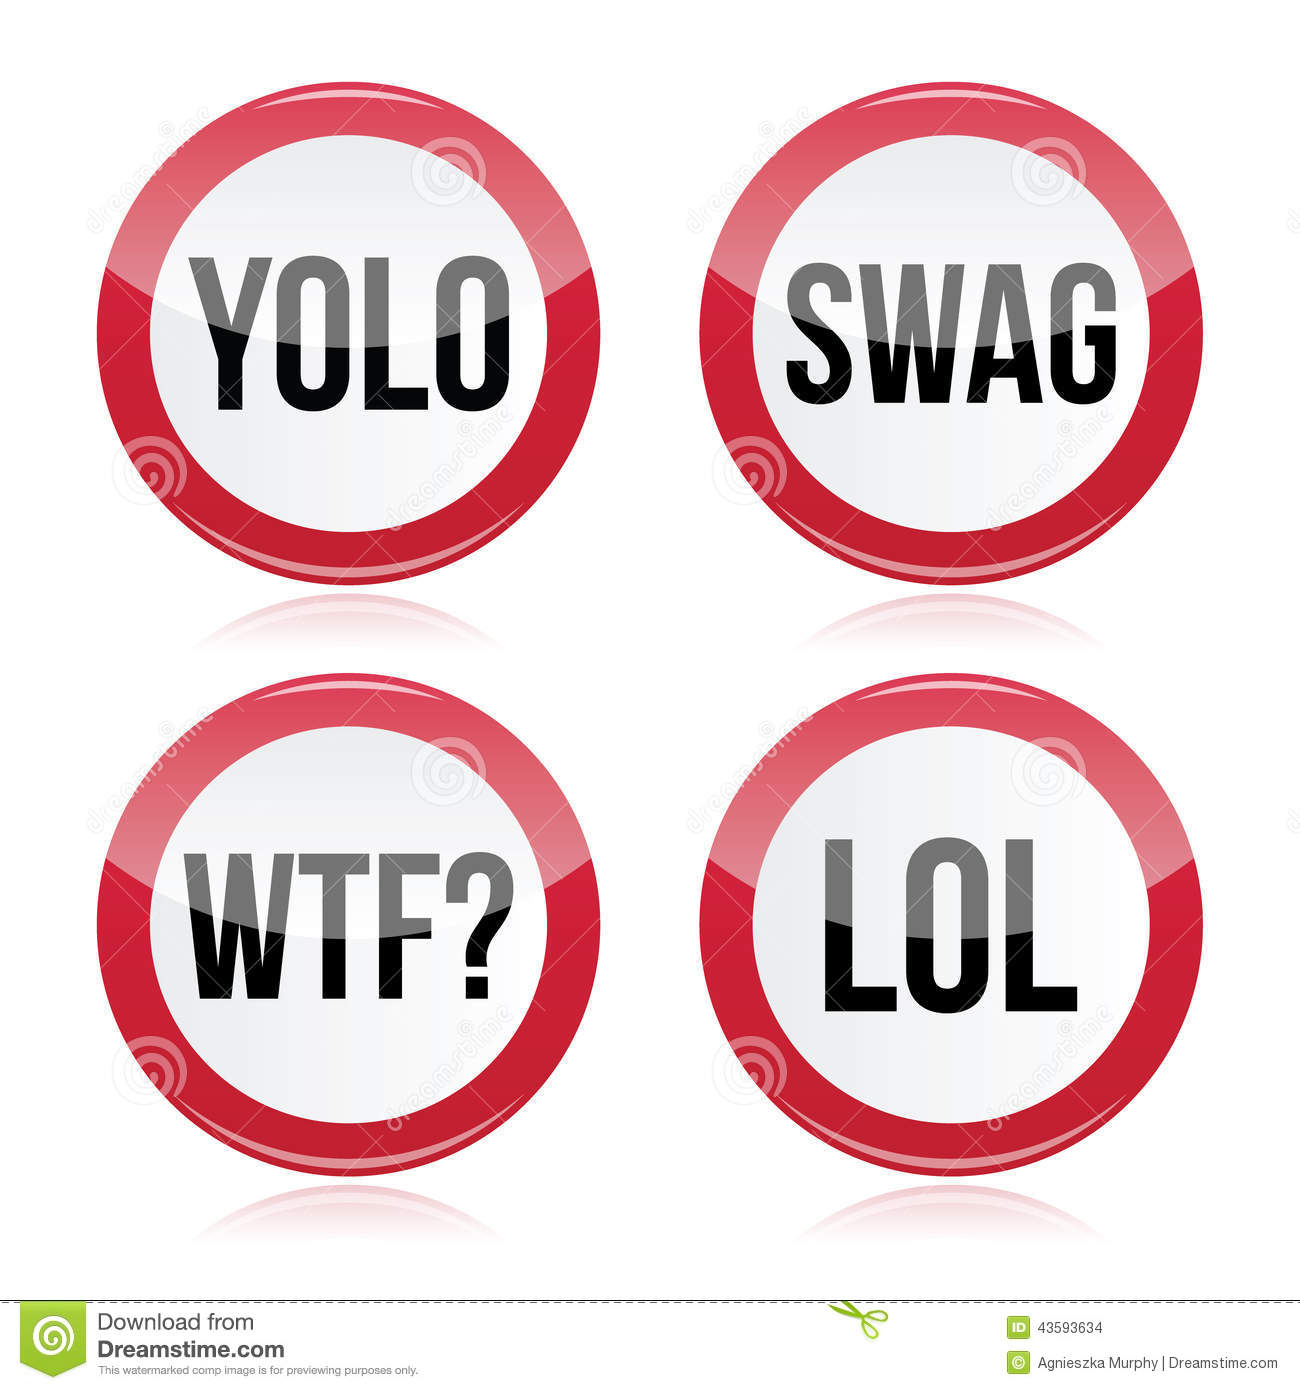 Yolo swag wtf lol signs stock illustration image 43593634